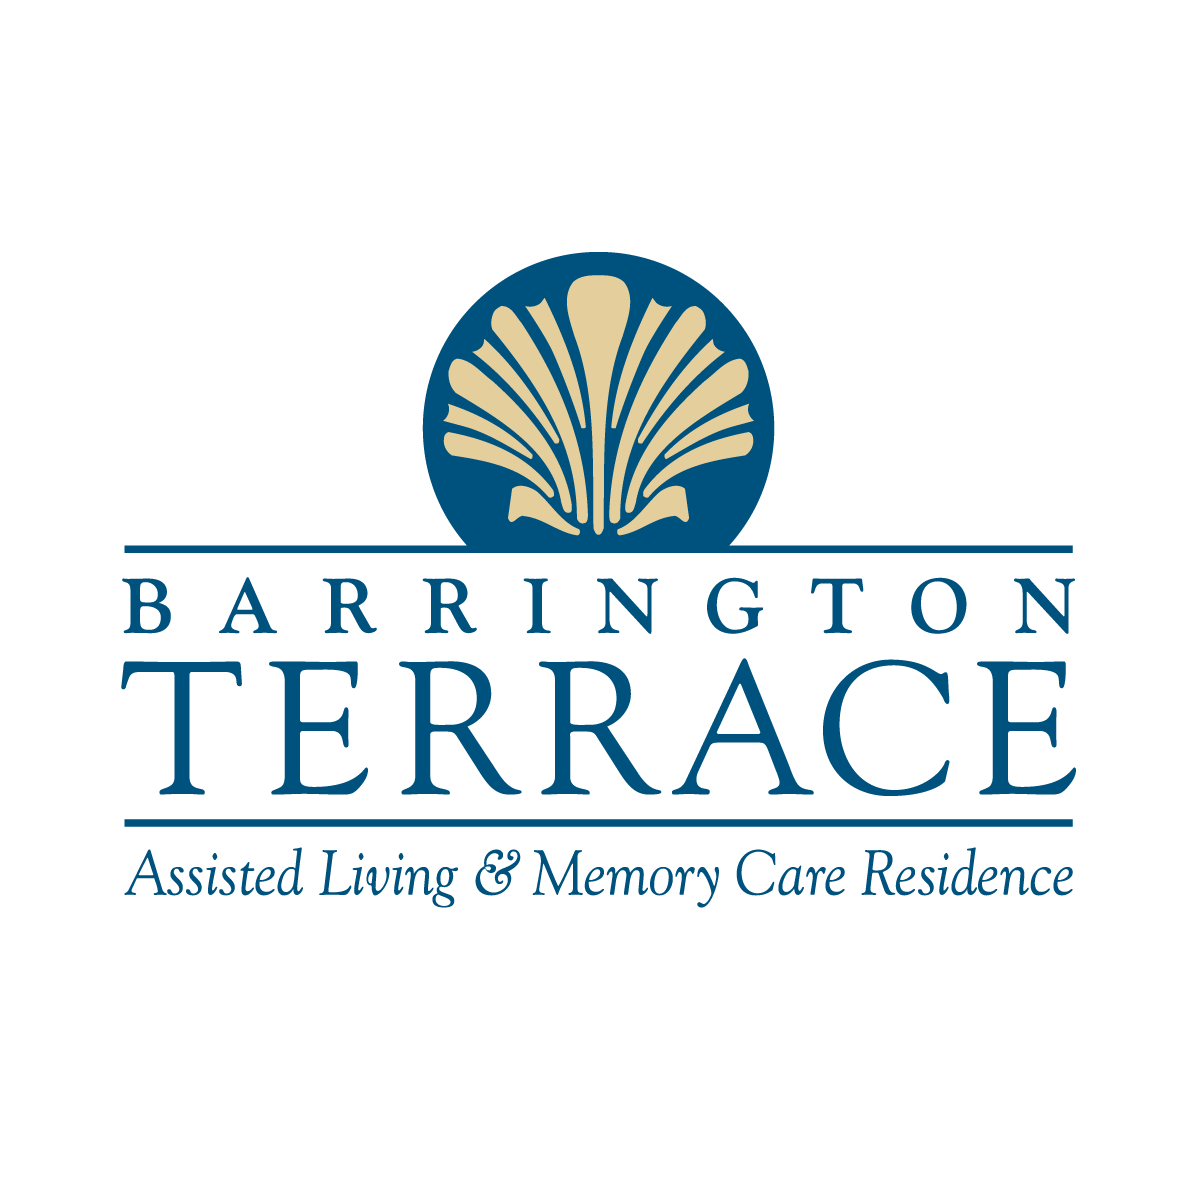 Barrington Terrace of Naples